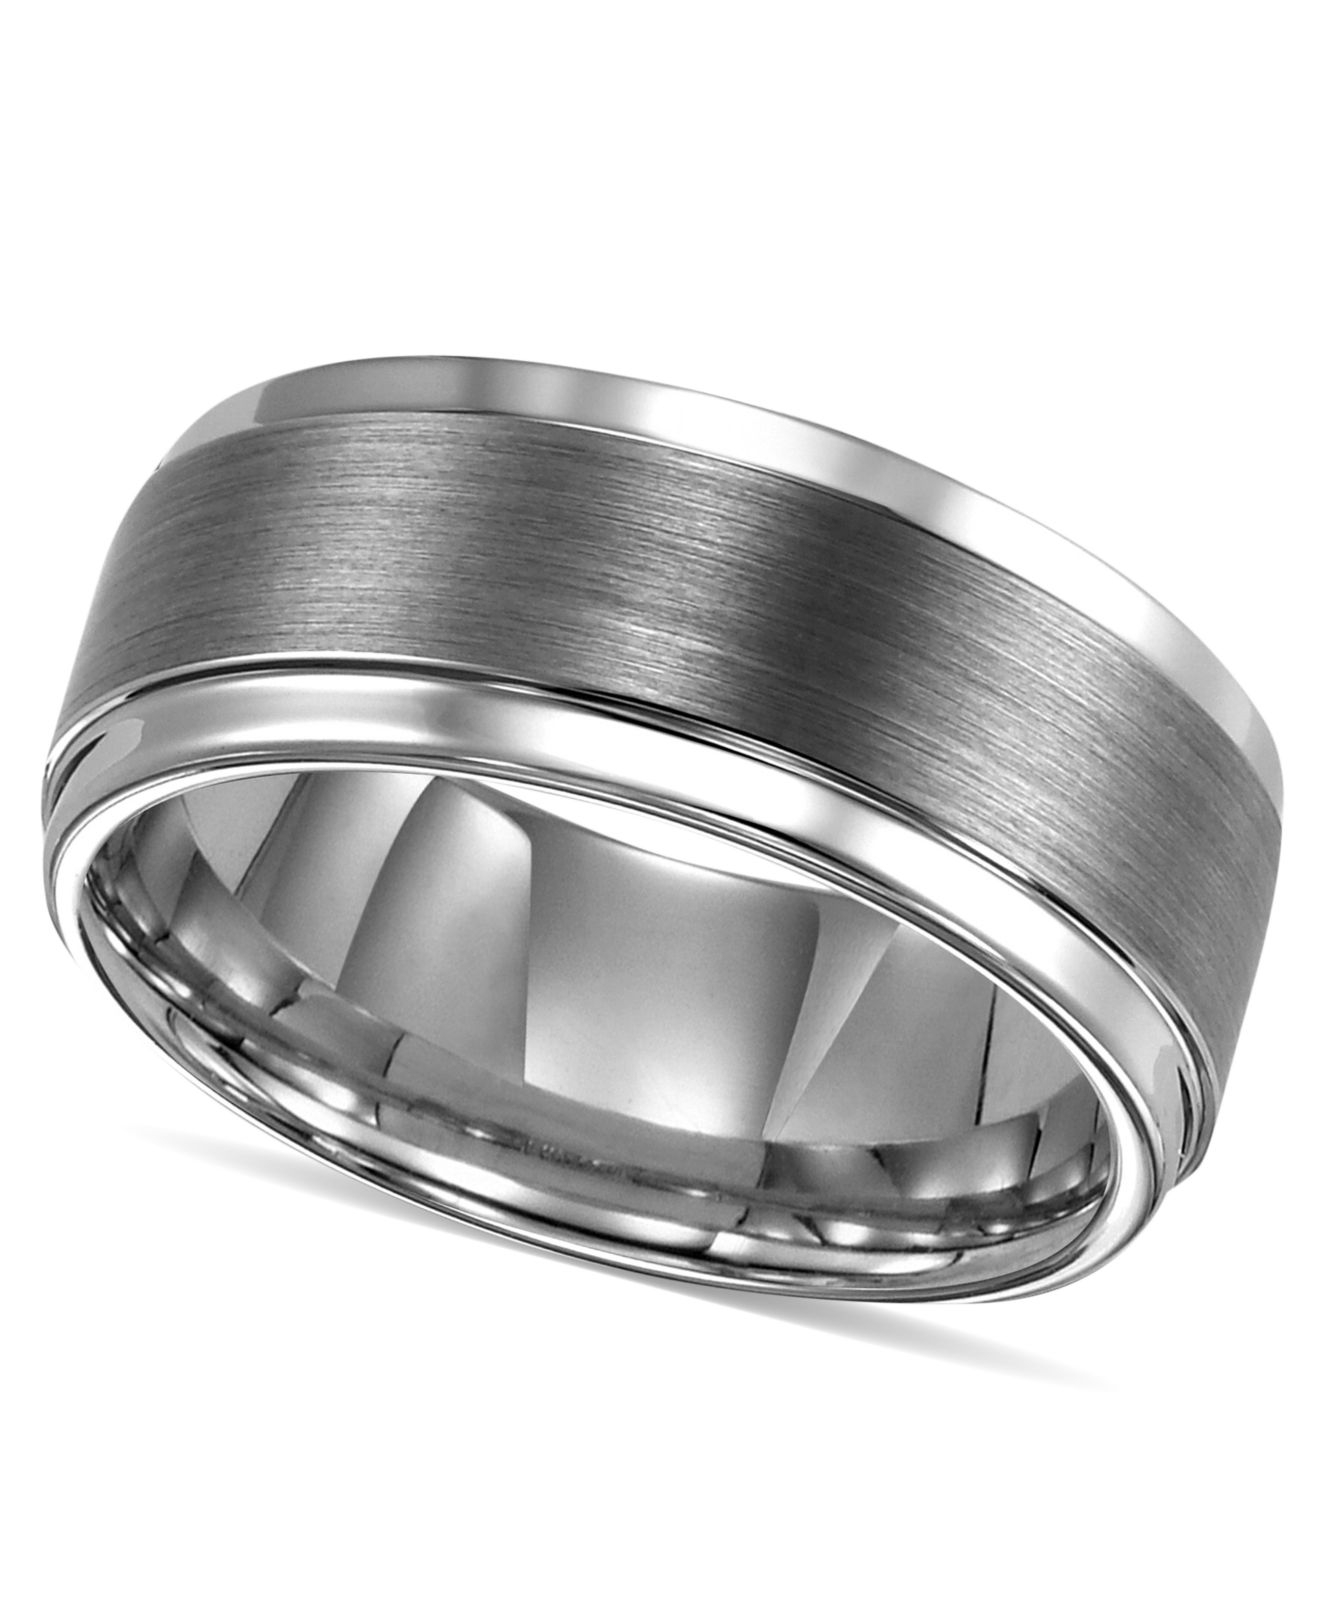 Triton Mens Ring Tungsten Carbide Comfort Fit Wedding Band 9mm Band Size 8 15 In Silver For